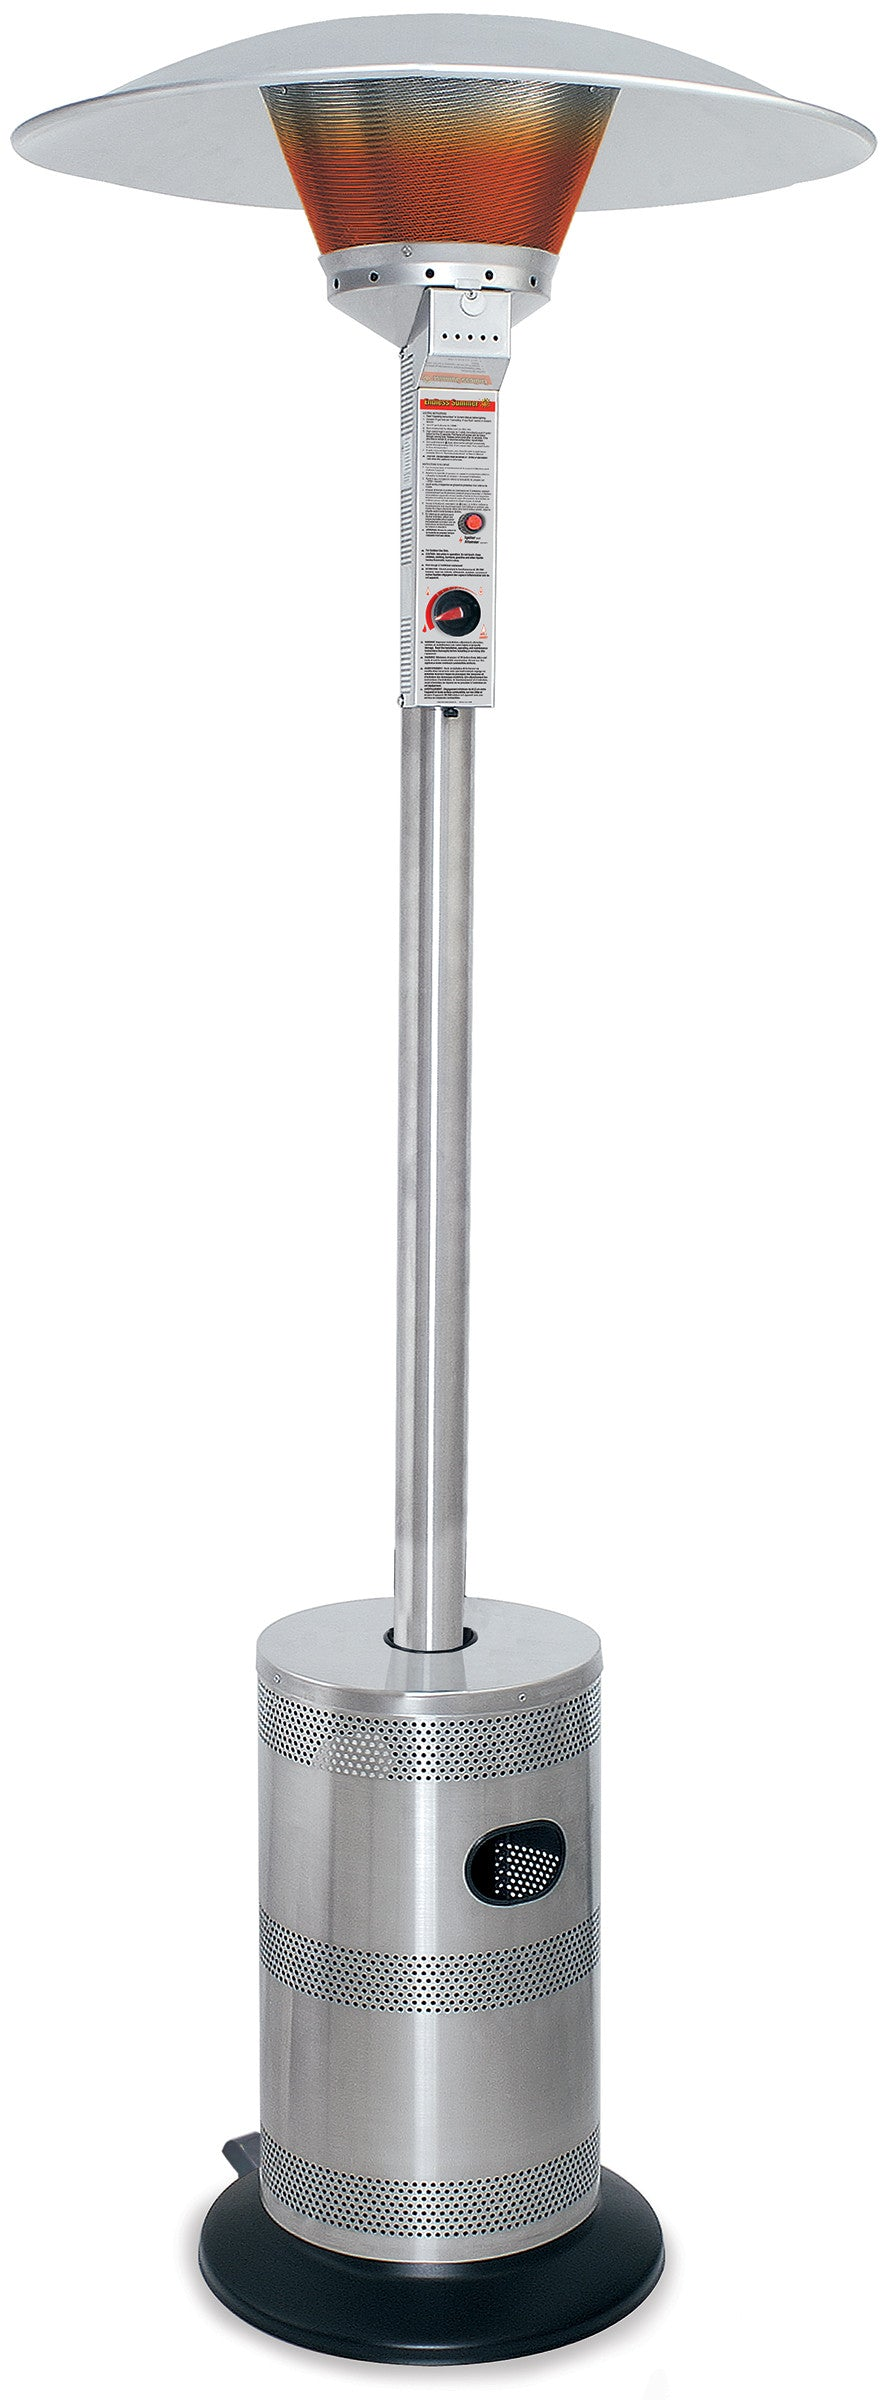 Stainless Steel Commerical Grade LP Gas Patio Heater